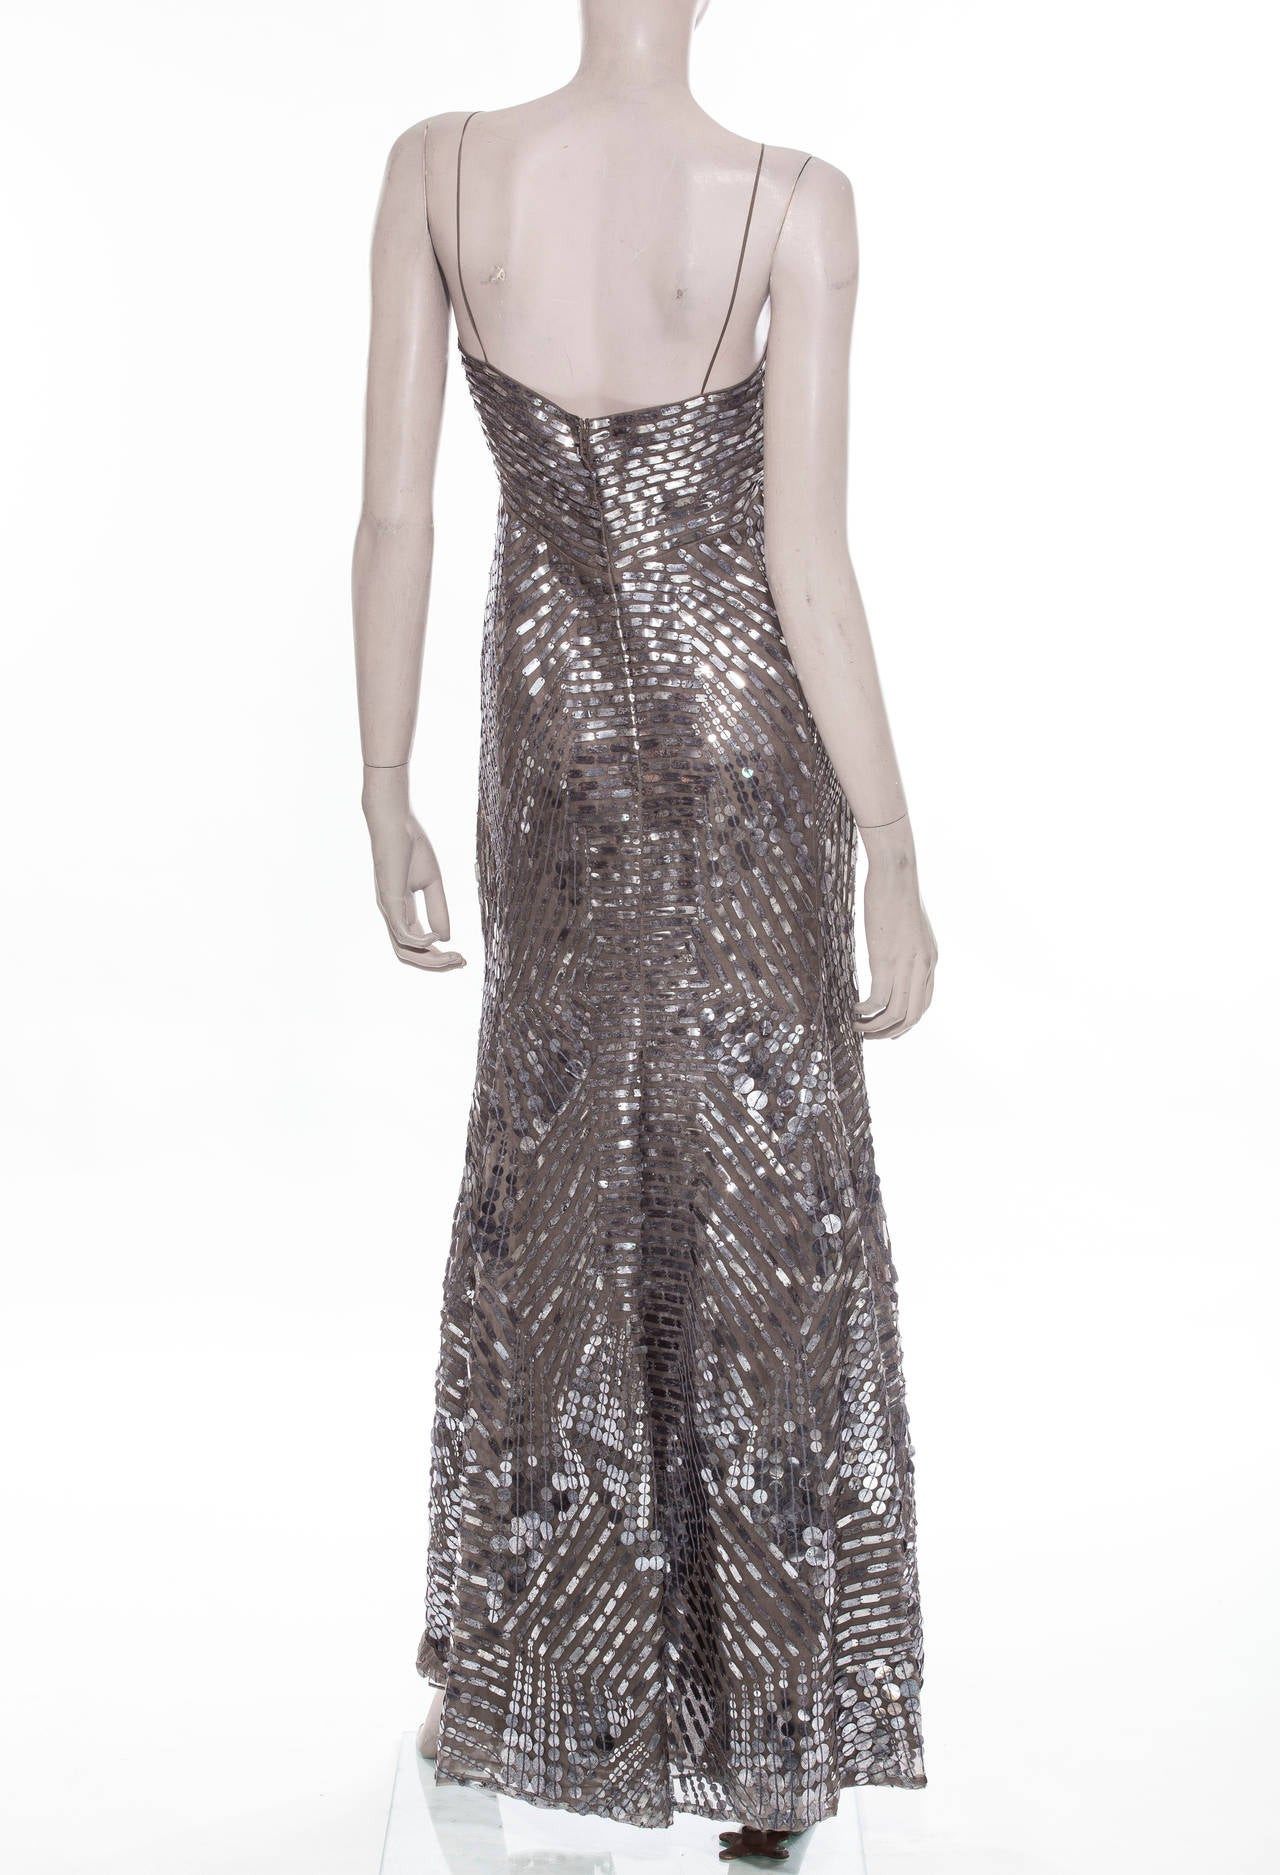 Gray Oscar De la Renta Silk Evening Dress With Pewter Embellishments, Fall 2007 For Sale